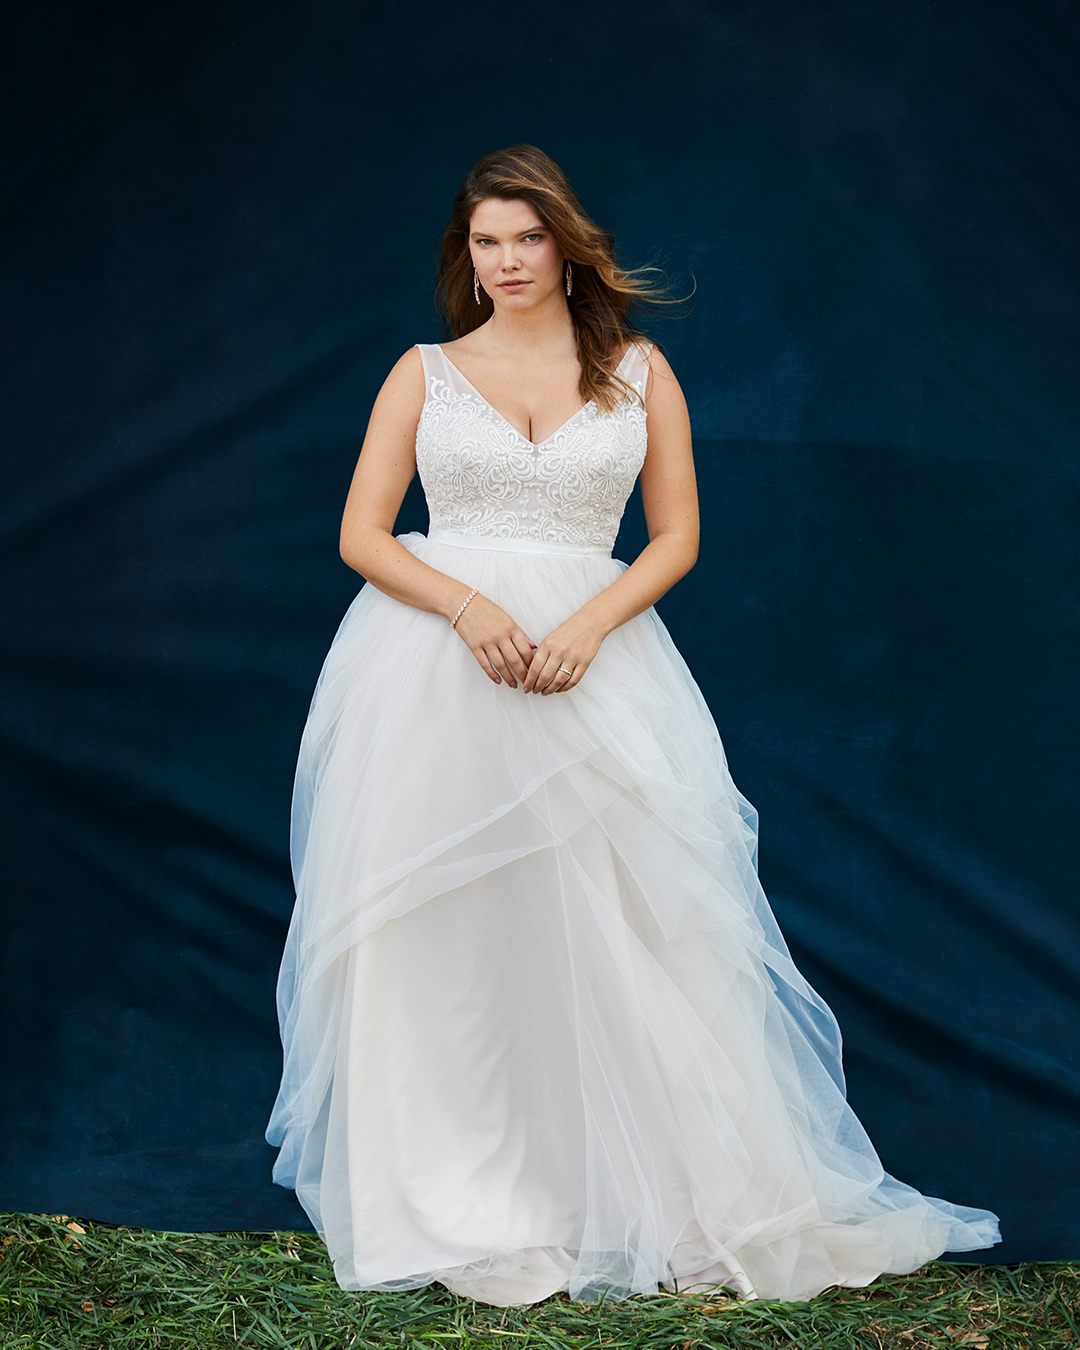 Most Beautiful Ball Gown Wedding Dresses: Affordable Wedding Dresses That Look Expensive